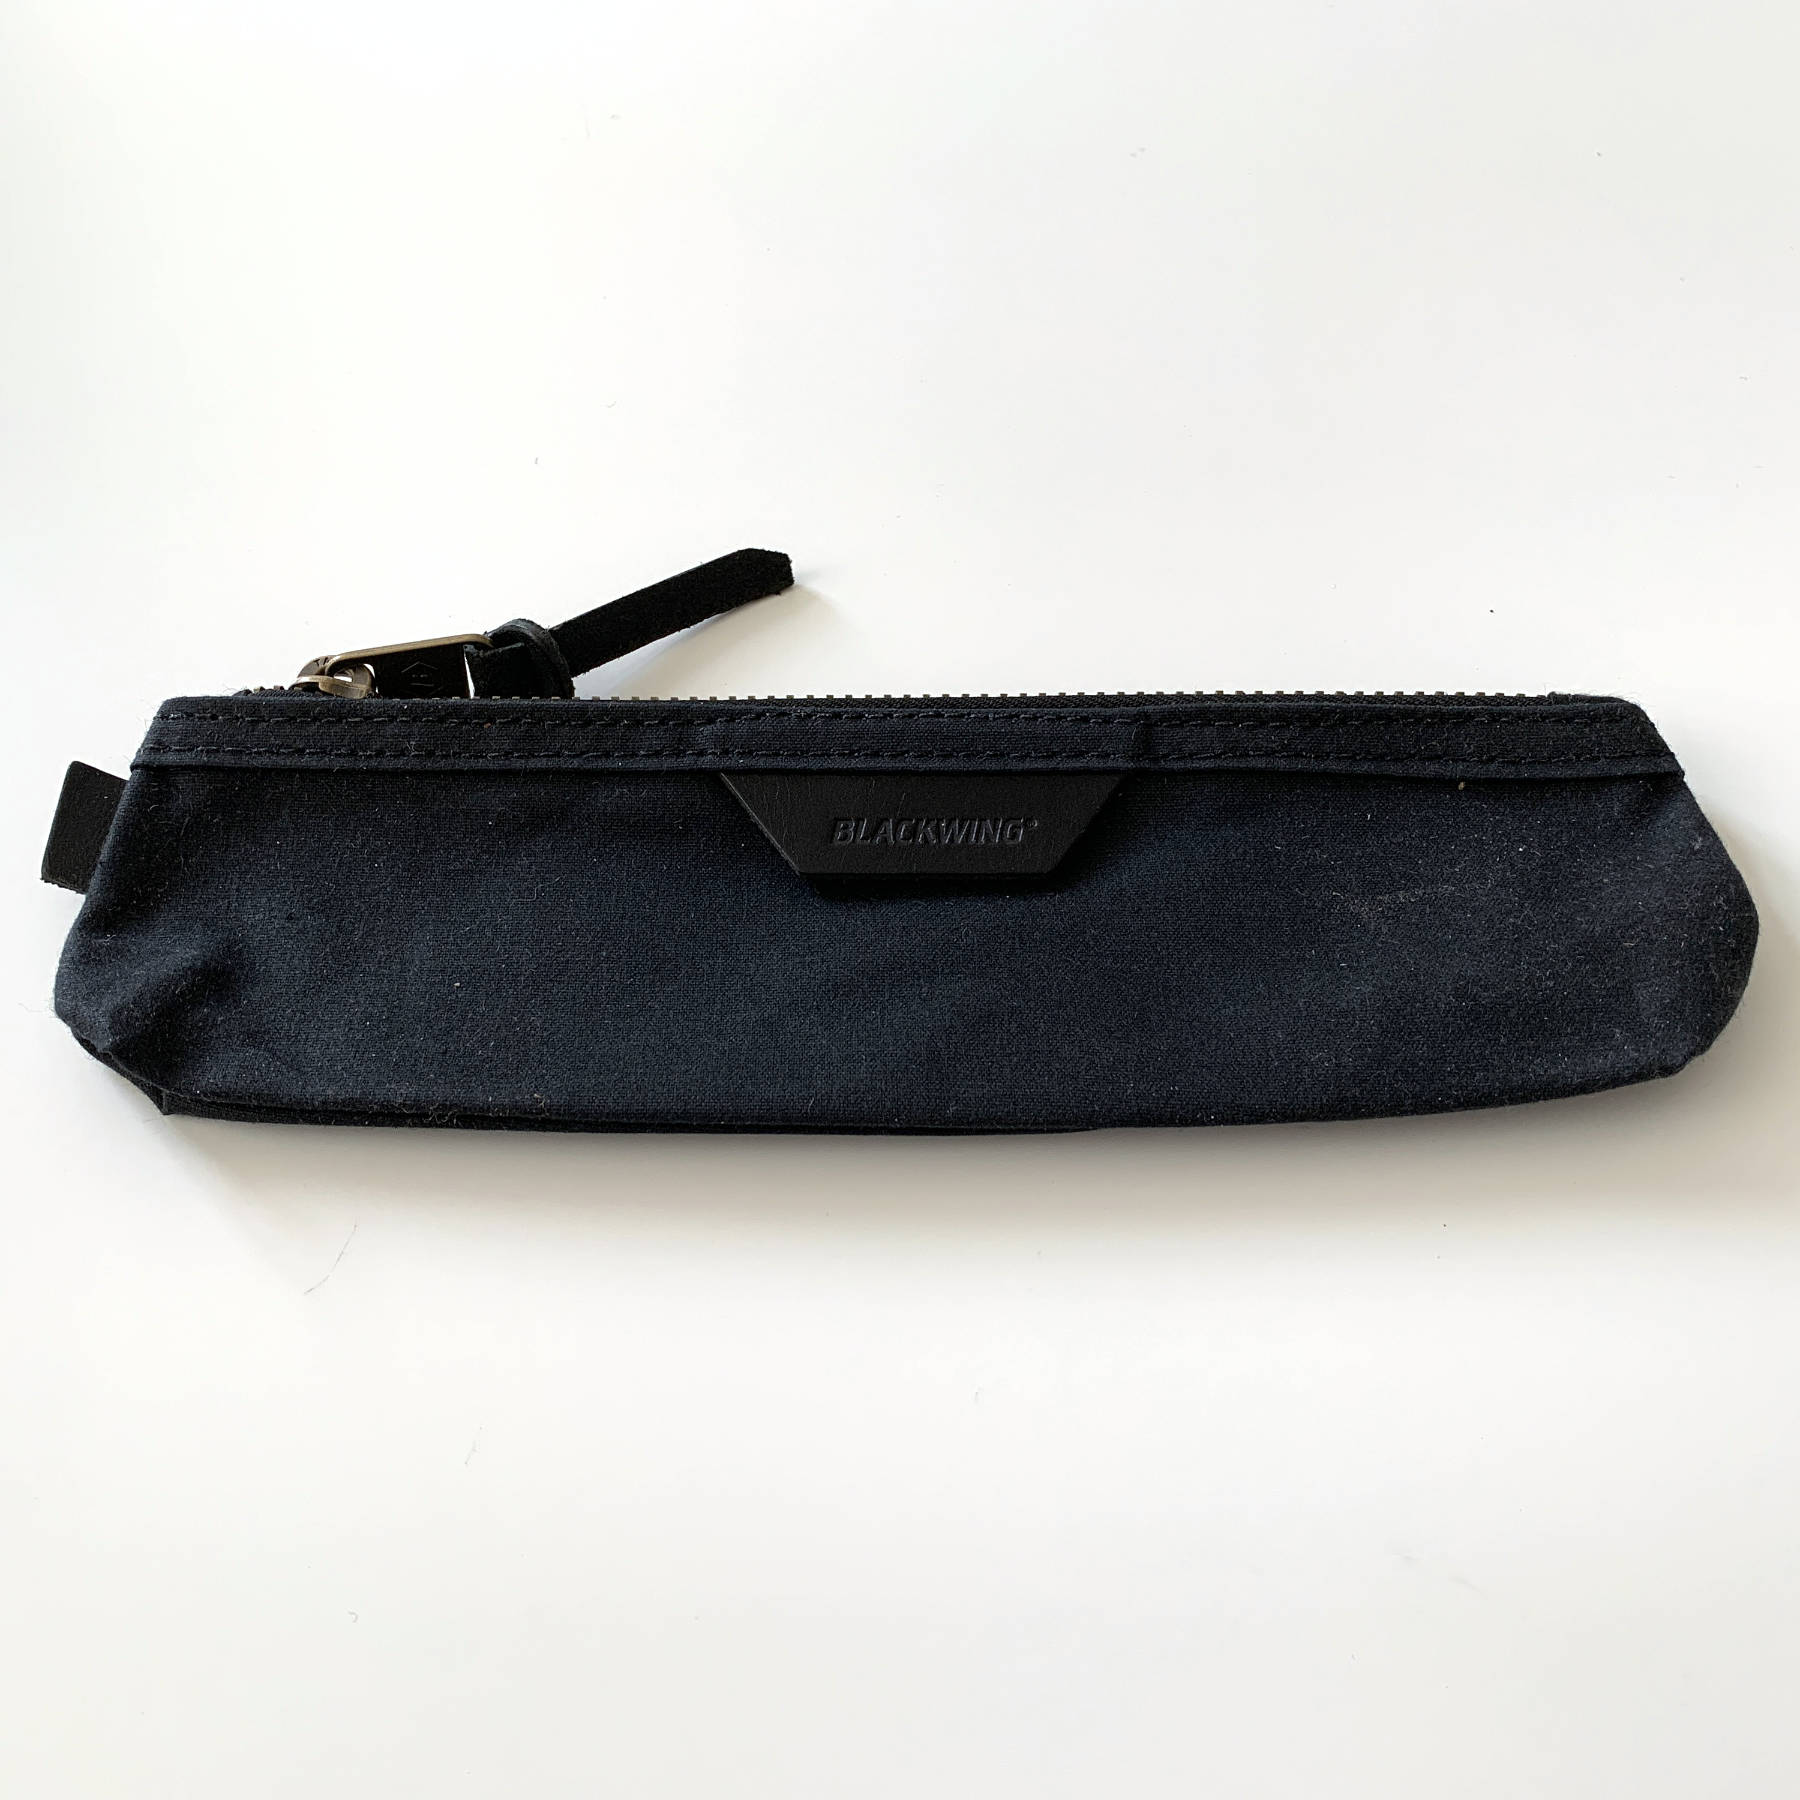 Pencil Pouch - BLACKWING